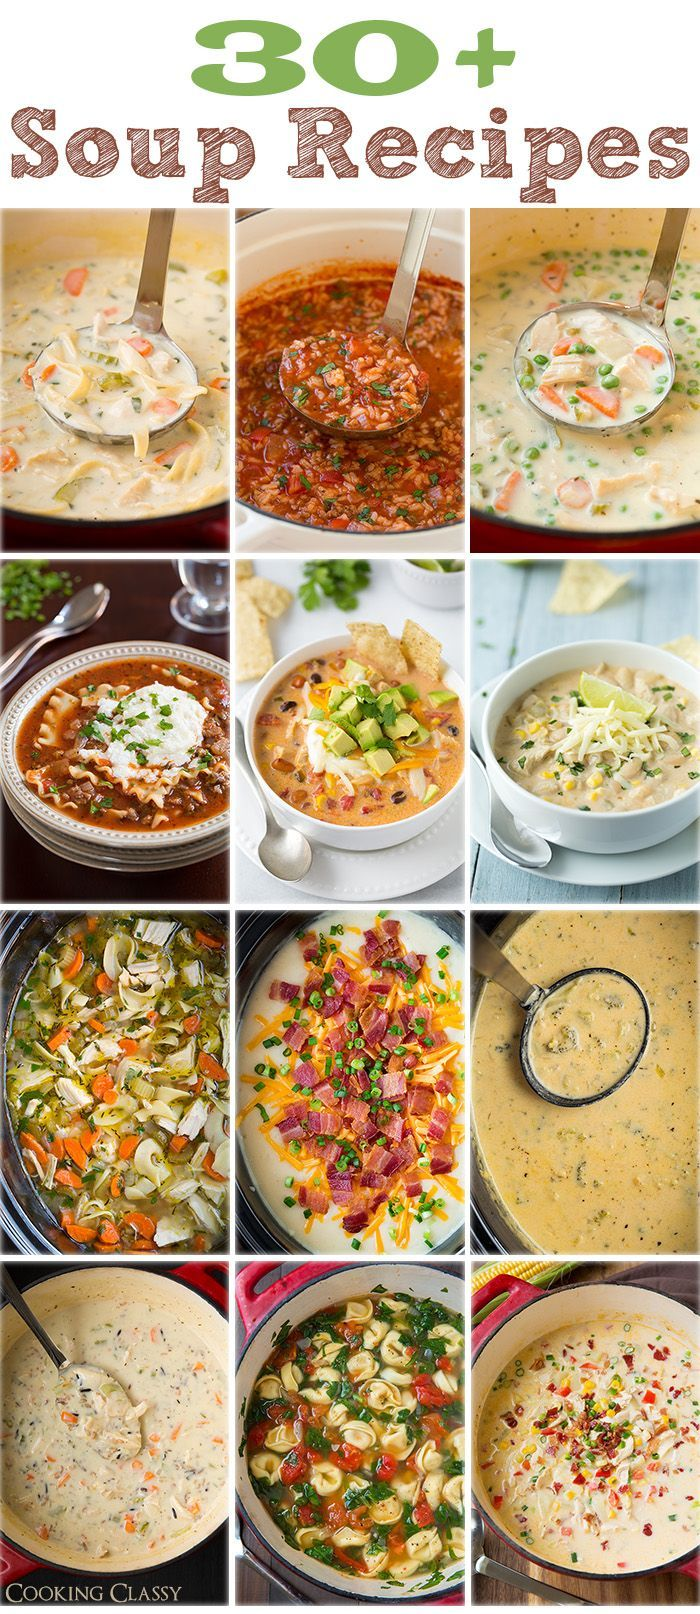 97 best images about crock pot meals on pinterest for Winter soup recipes easy